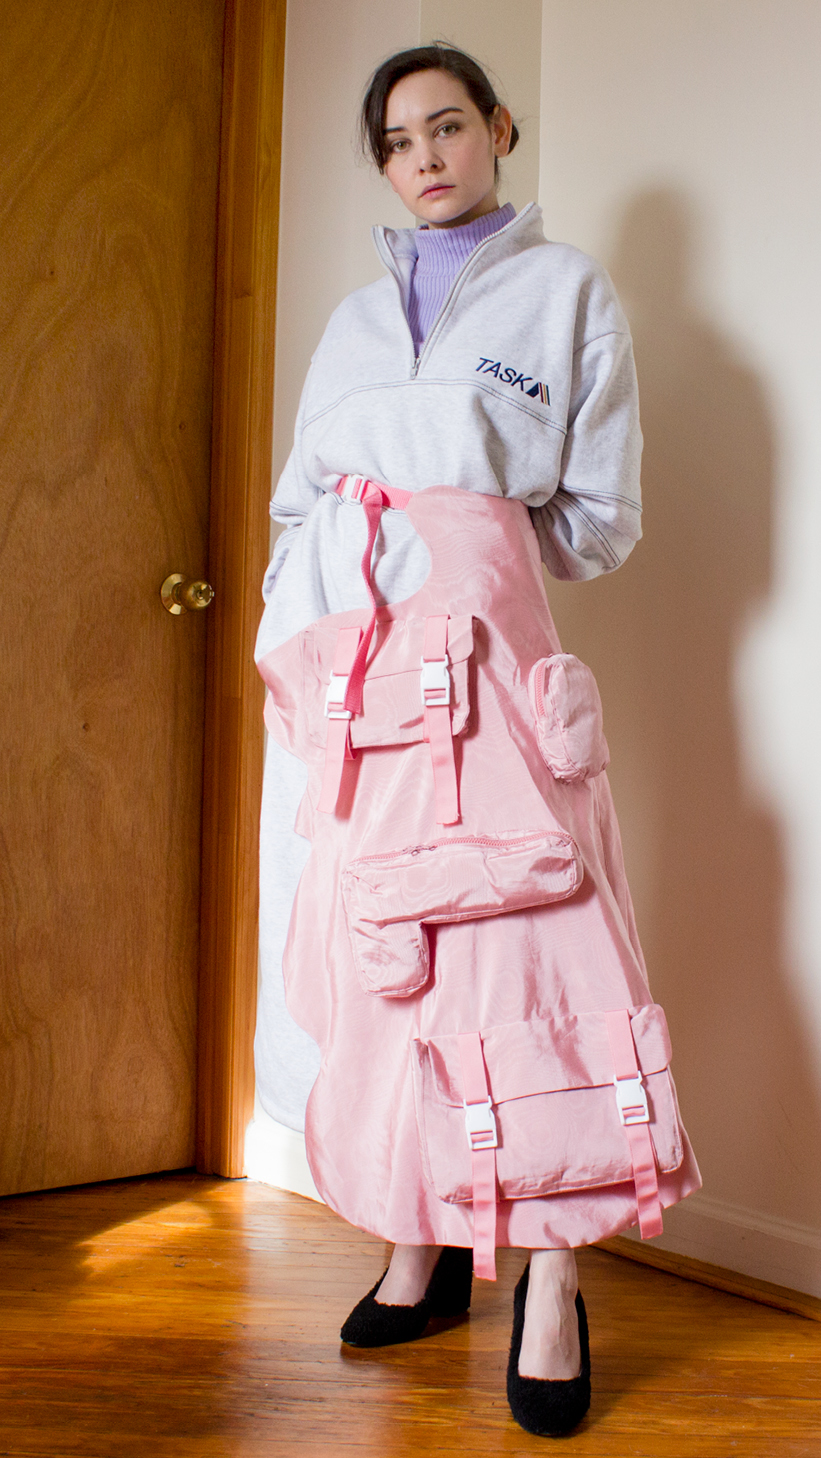 pink moire apron with decorative pockets and side release buckles, oversized sweatshirt dress, pastel purple turtleneck and black faux fur Helmut Lang shoes #graduatecollection #fashiondesign #fashiondesignstudent #outfit #fashion